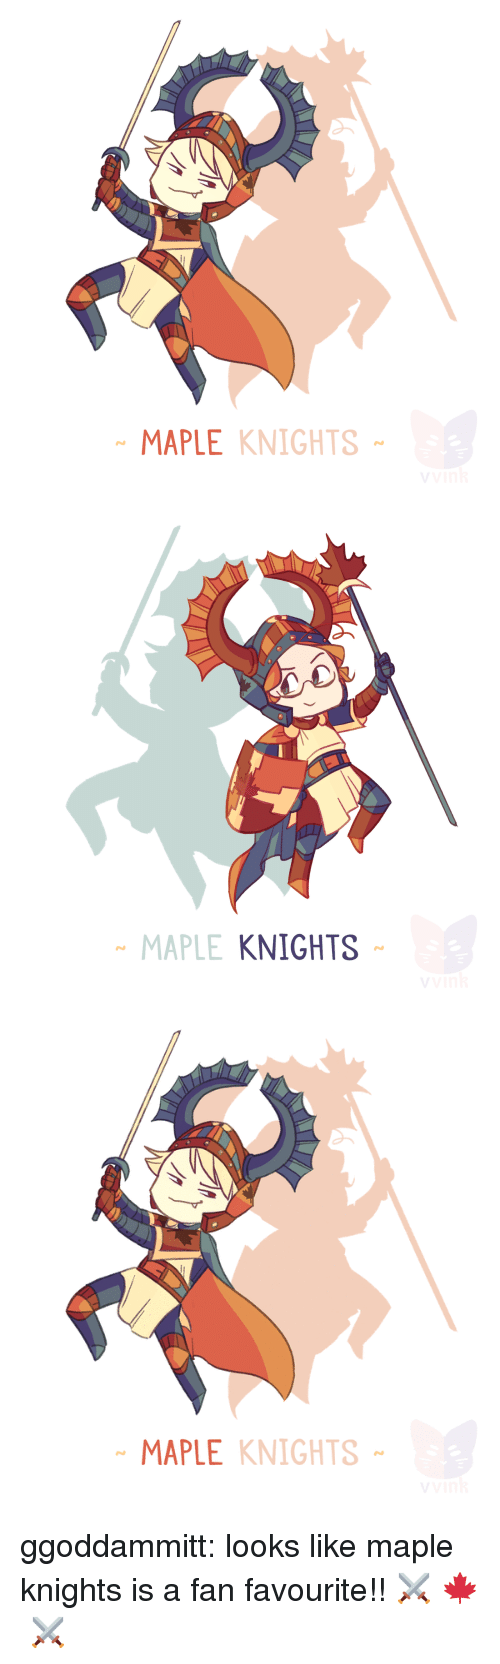 knights: MAPLE KNIGHTS   MAPLE  KNIGHTS   MAPLE KNIGHTS ggoddammitt:  looks like maple knights is a fan favourite!! ⚔  🍁 ⚔